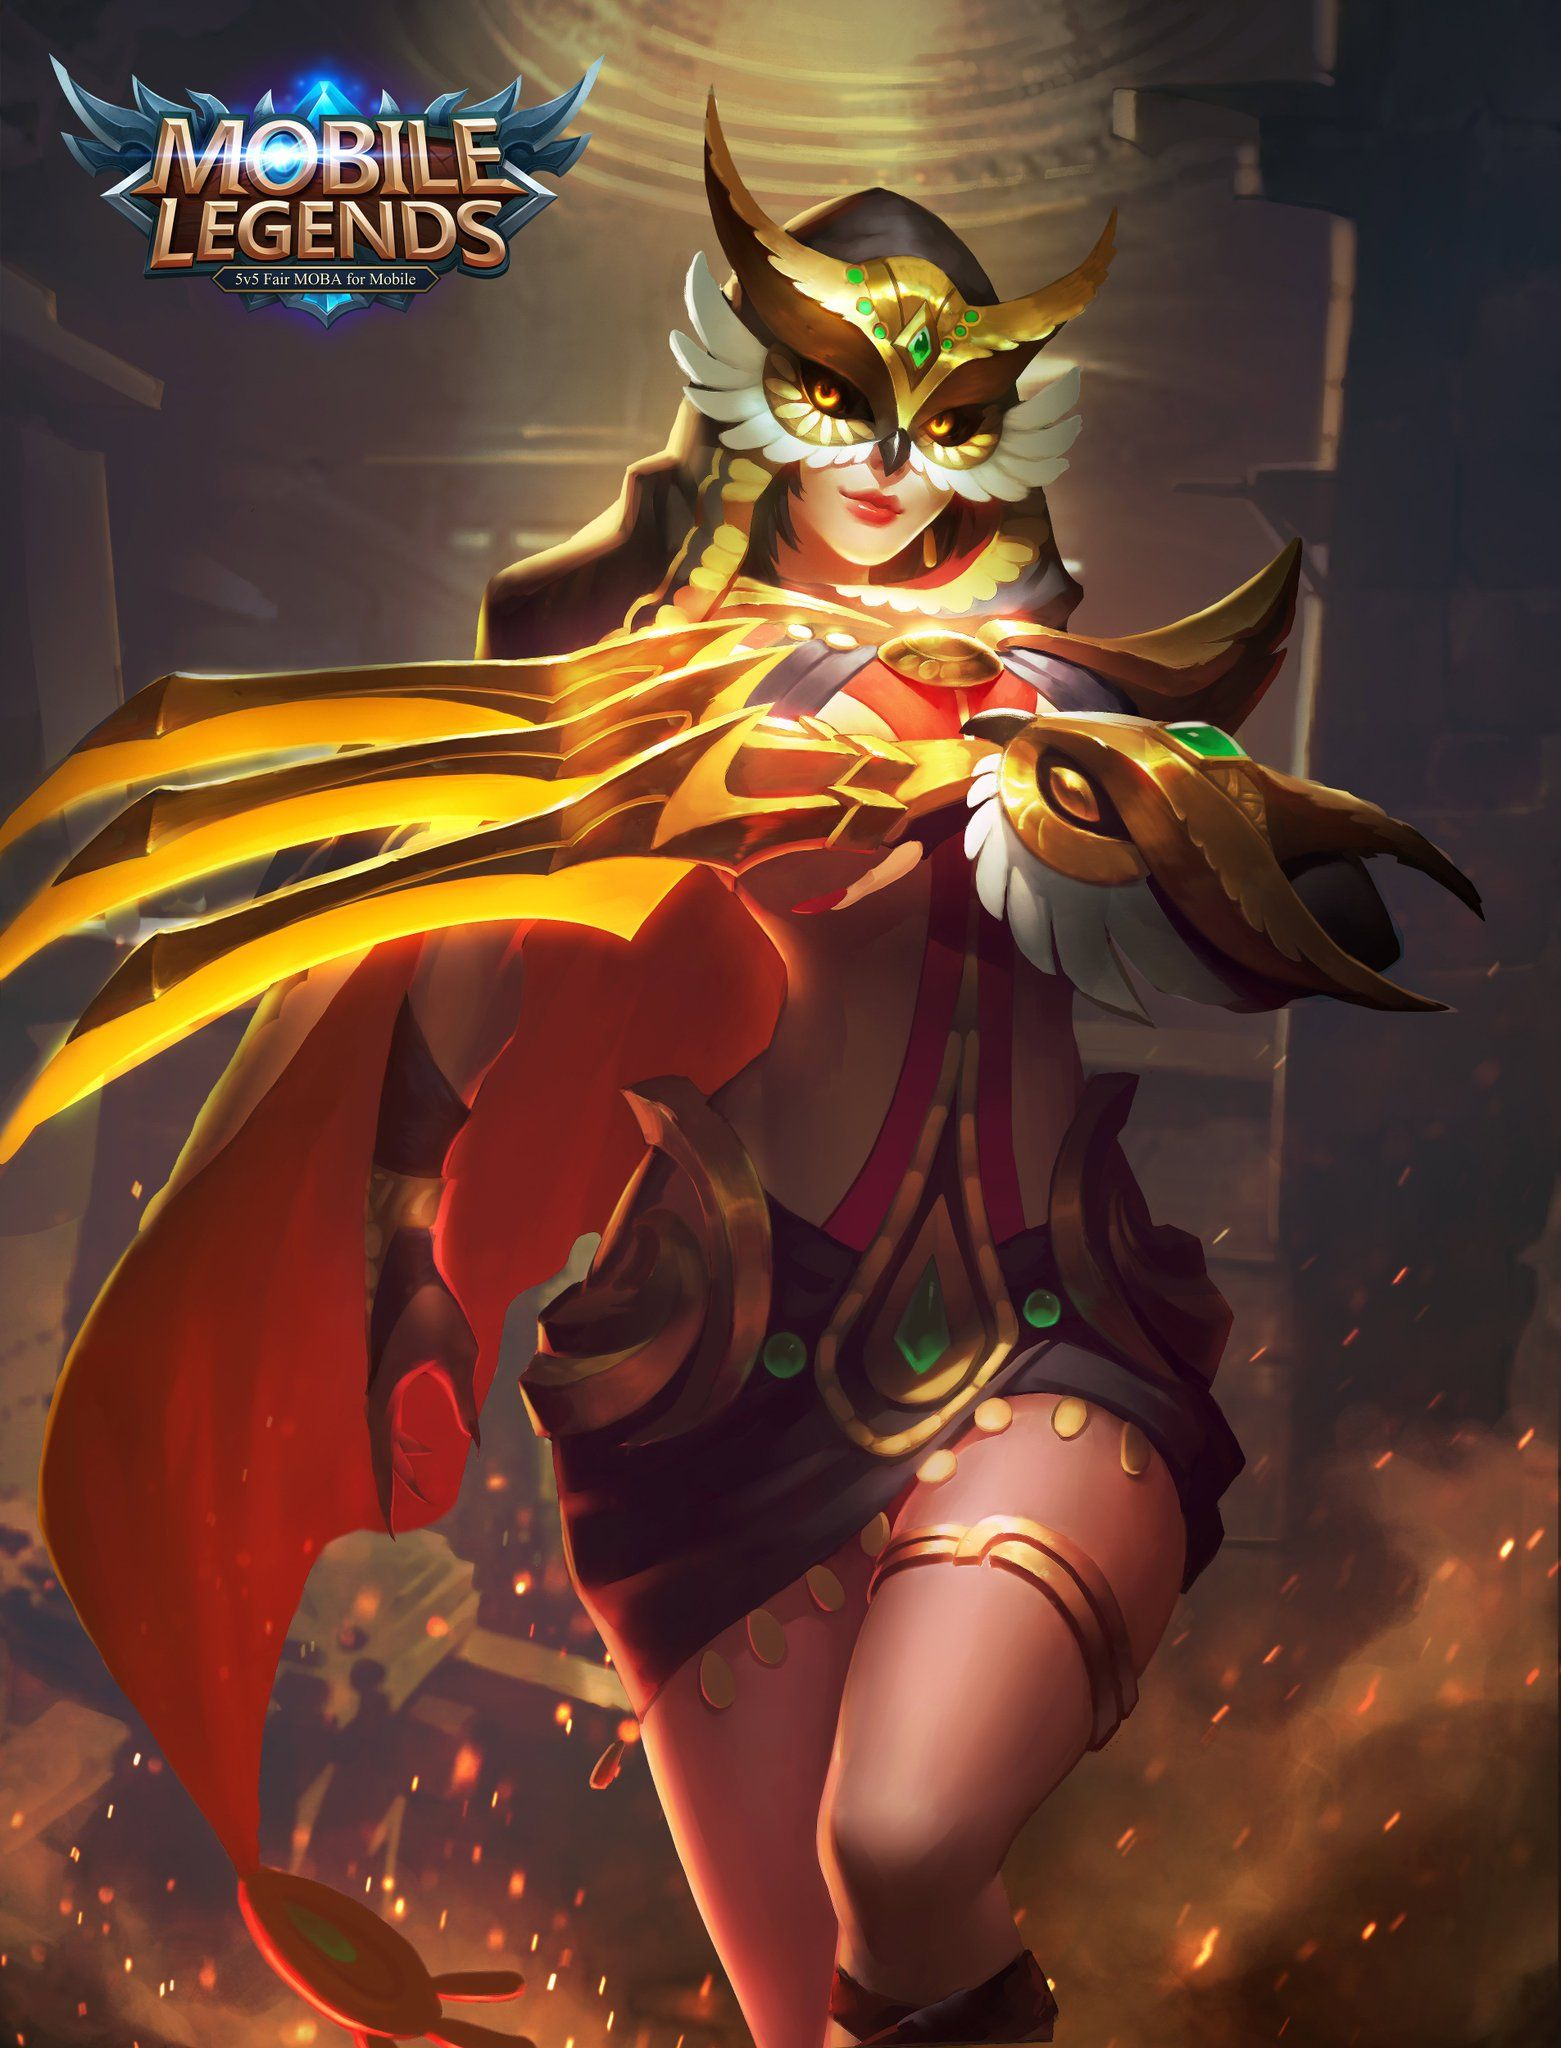 Wallpaper Mobile Legends Freya Valkrie